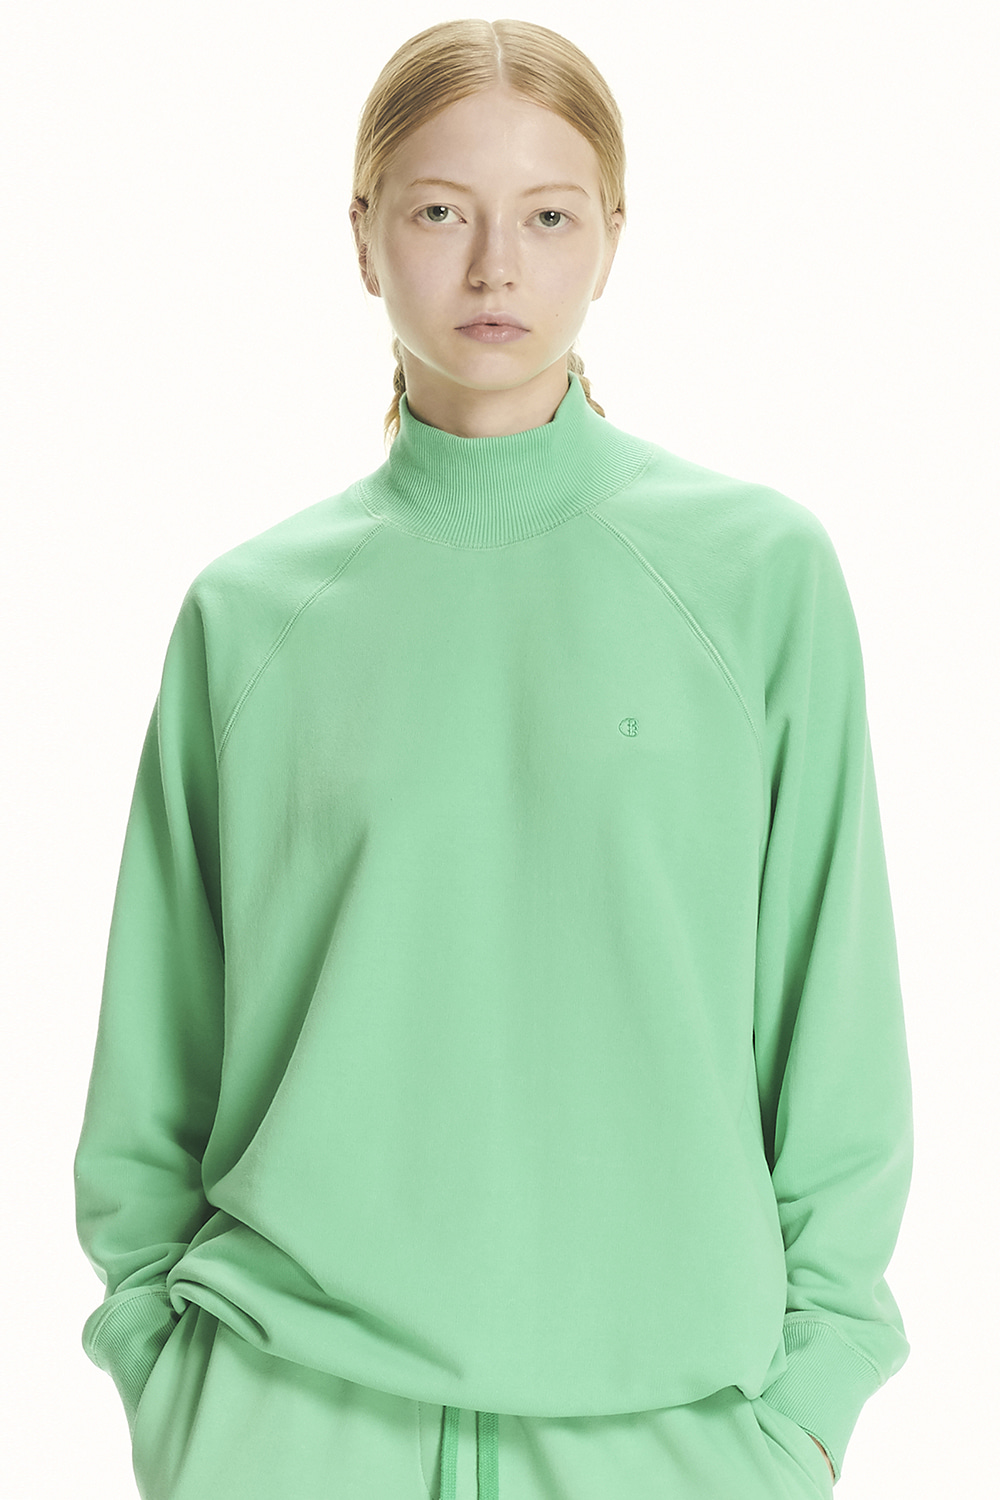 PS21 DRAWSTRING MOCK-NECK GREEN SWEATSHIRT